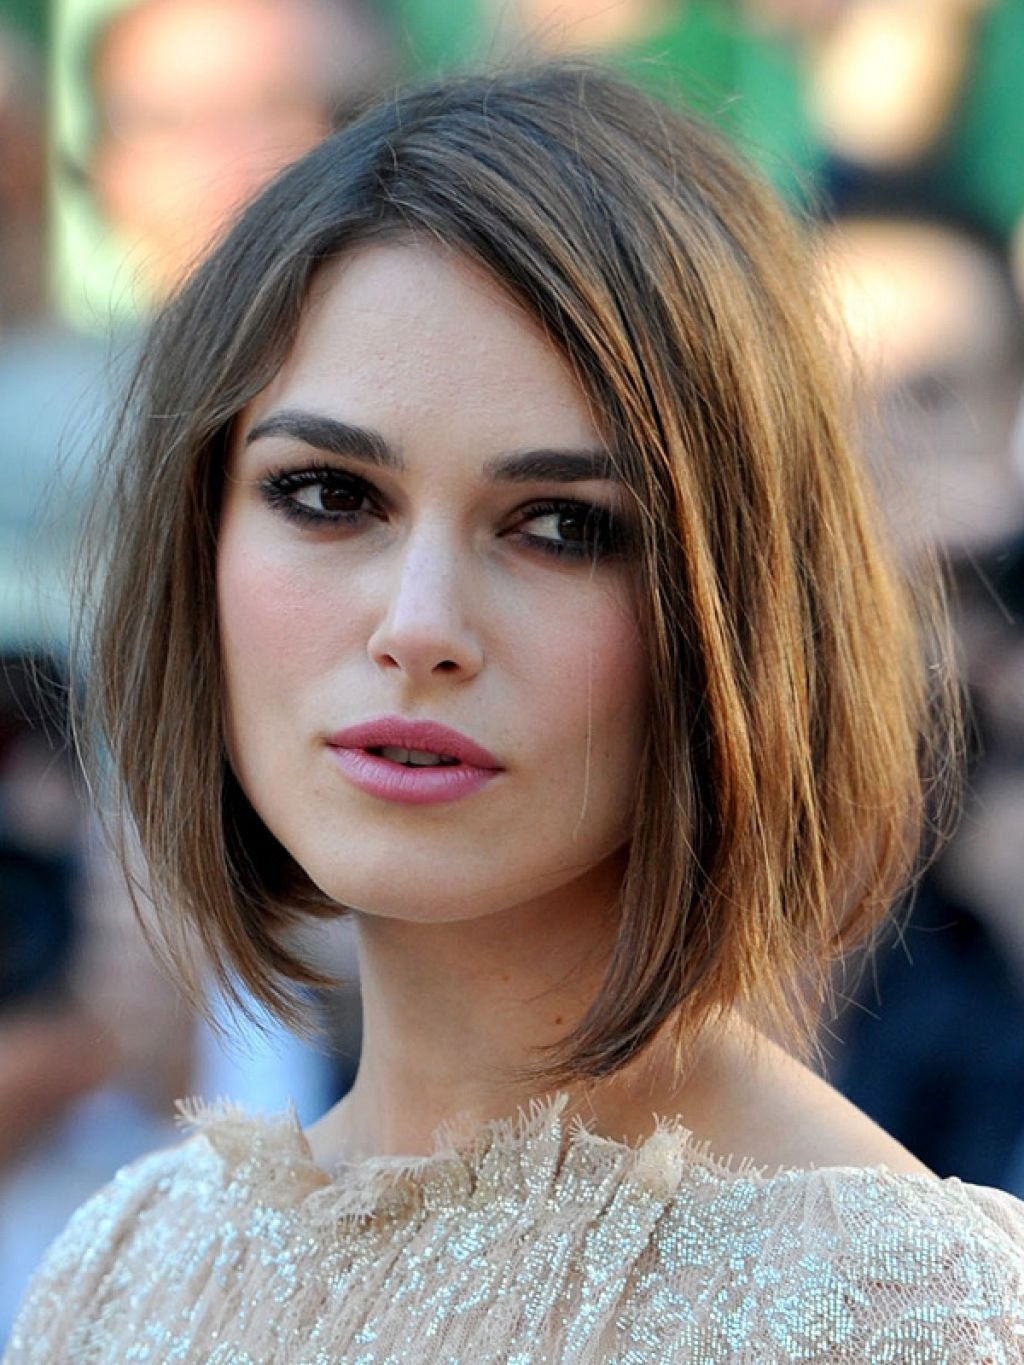 The Best Pictures Of Medium Length Bob Hairstyles Hairstyle For Pictures